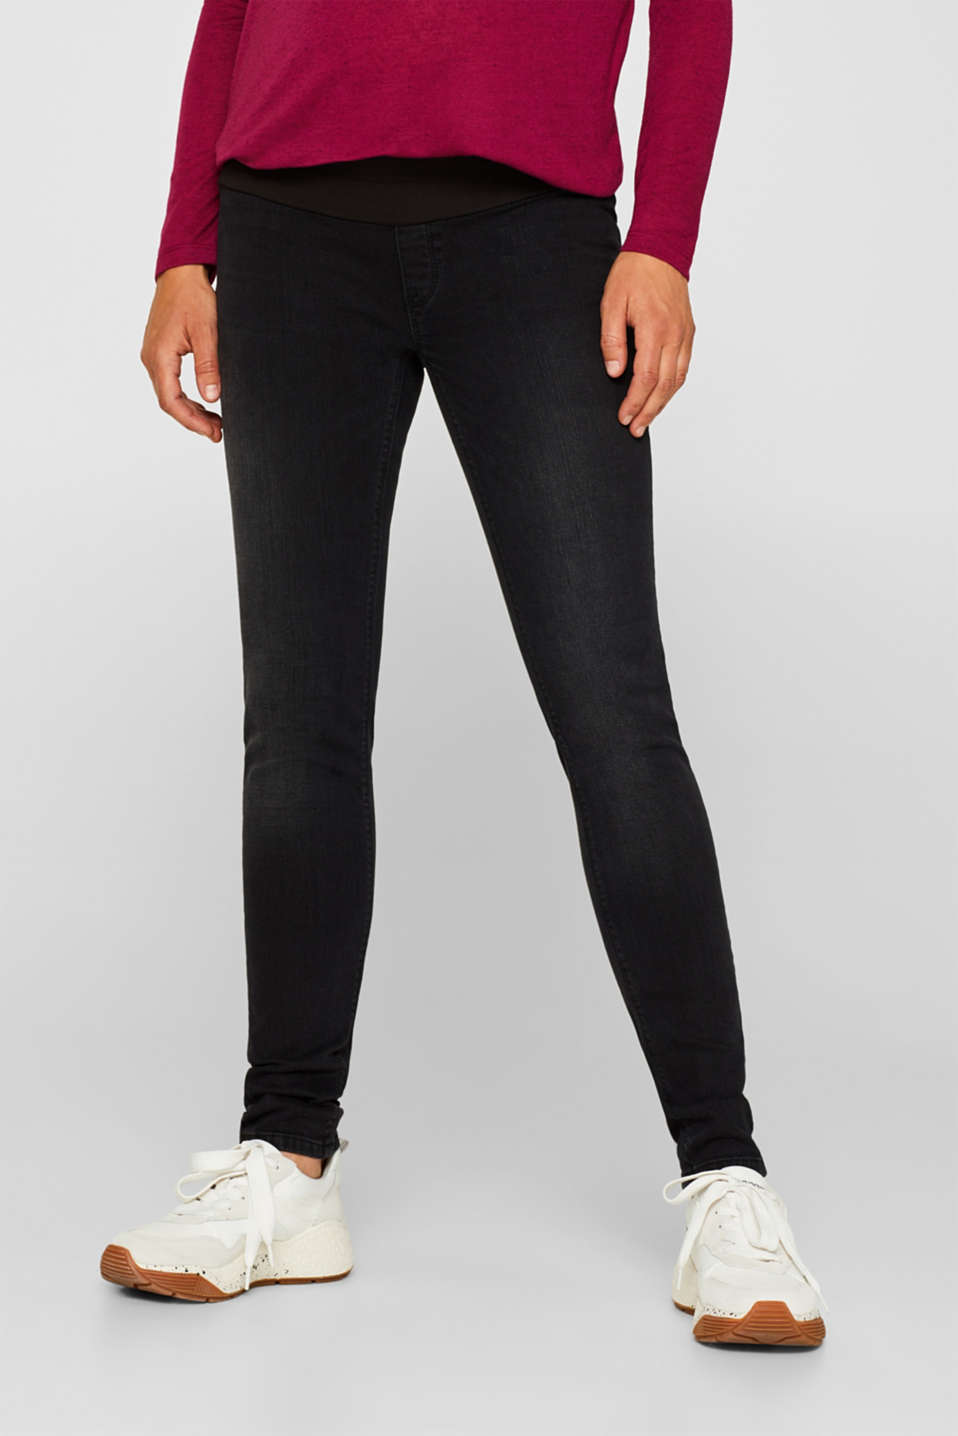 Esprit - Jeggings med linning under magen